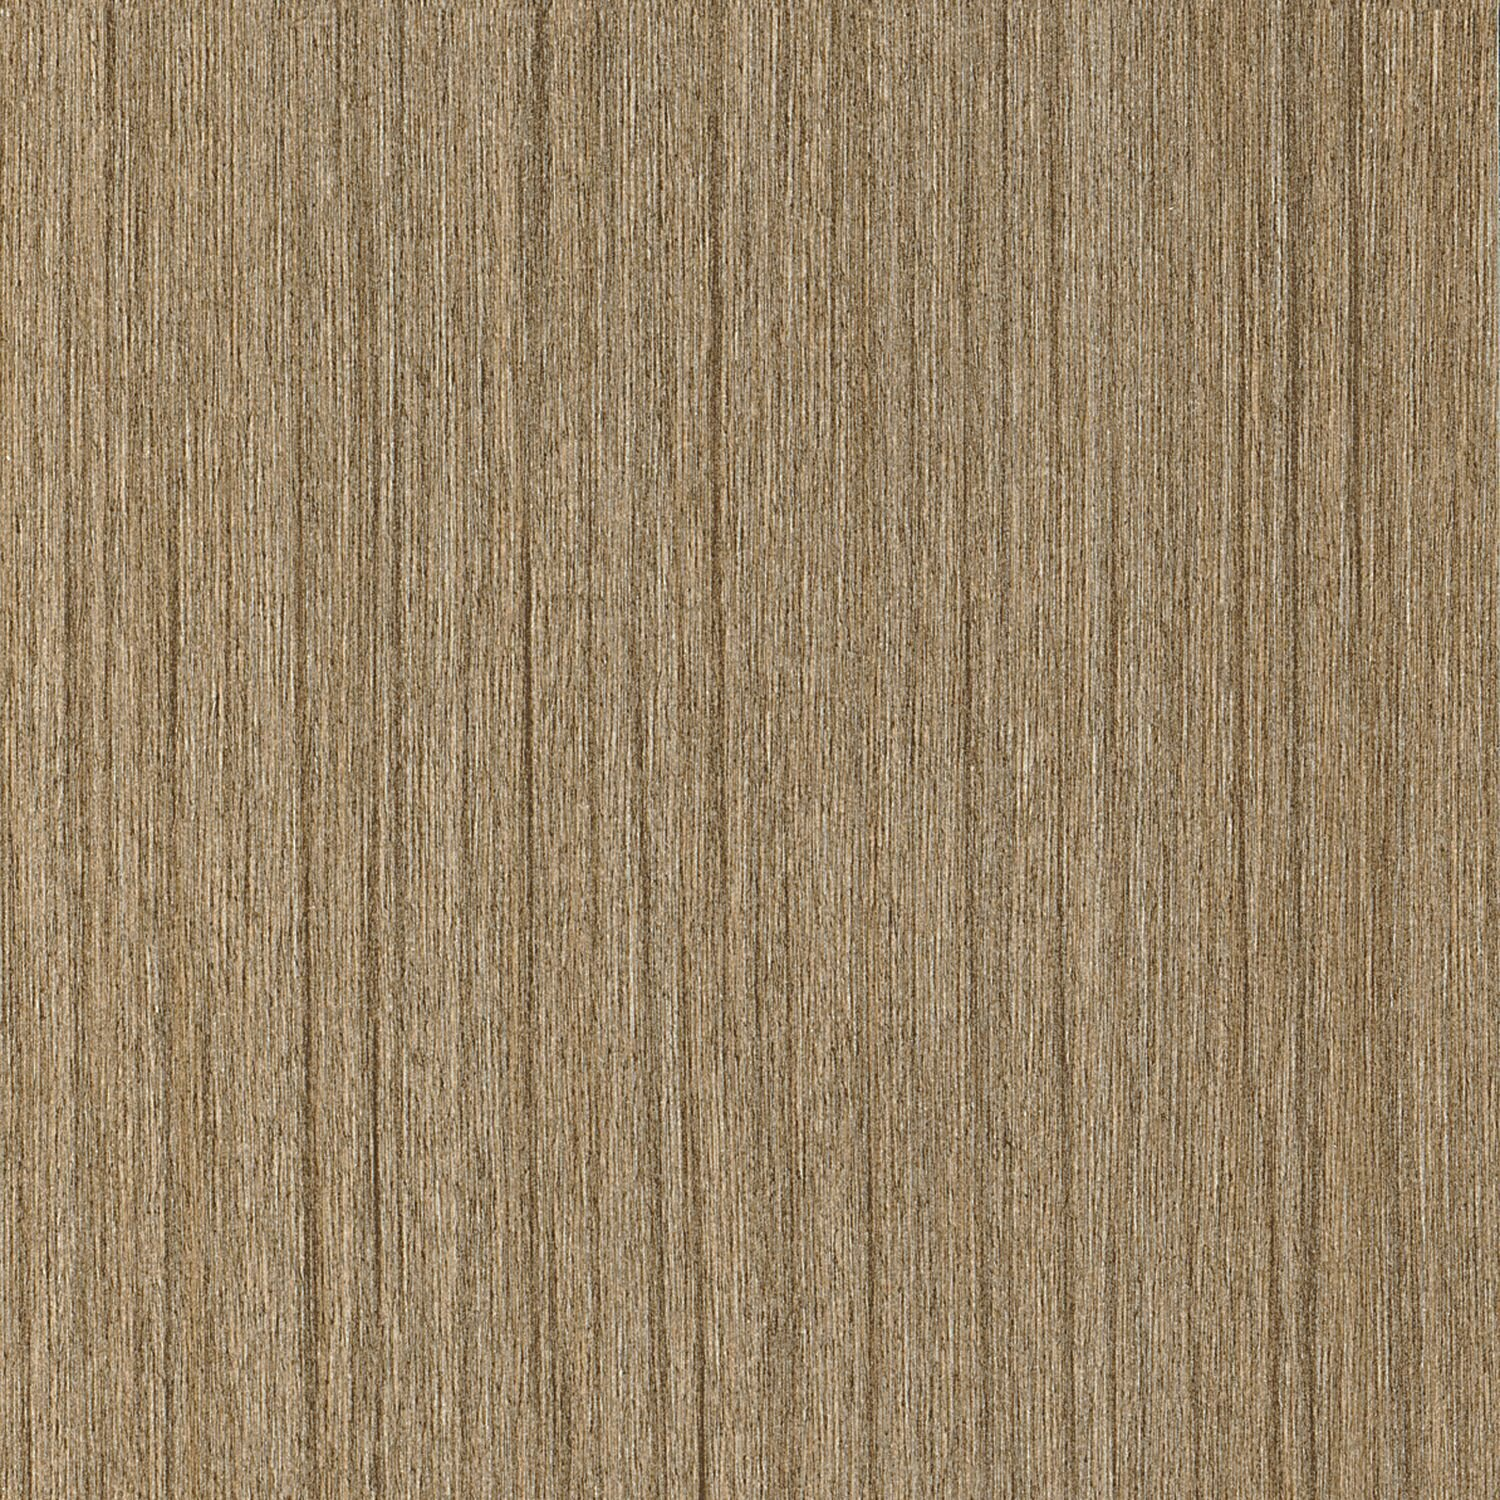 brown pin entryway flooring alterna light luxury armstrong travertine show alternative look athenian honey hardwood vinyl for tan details tile reserve lvt floors